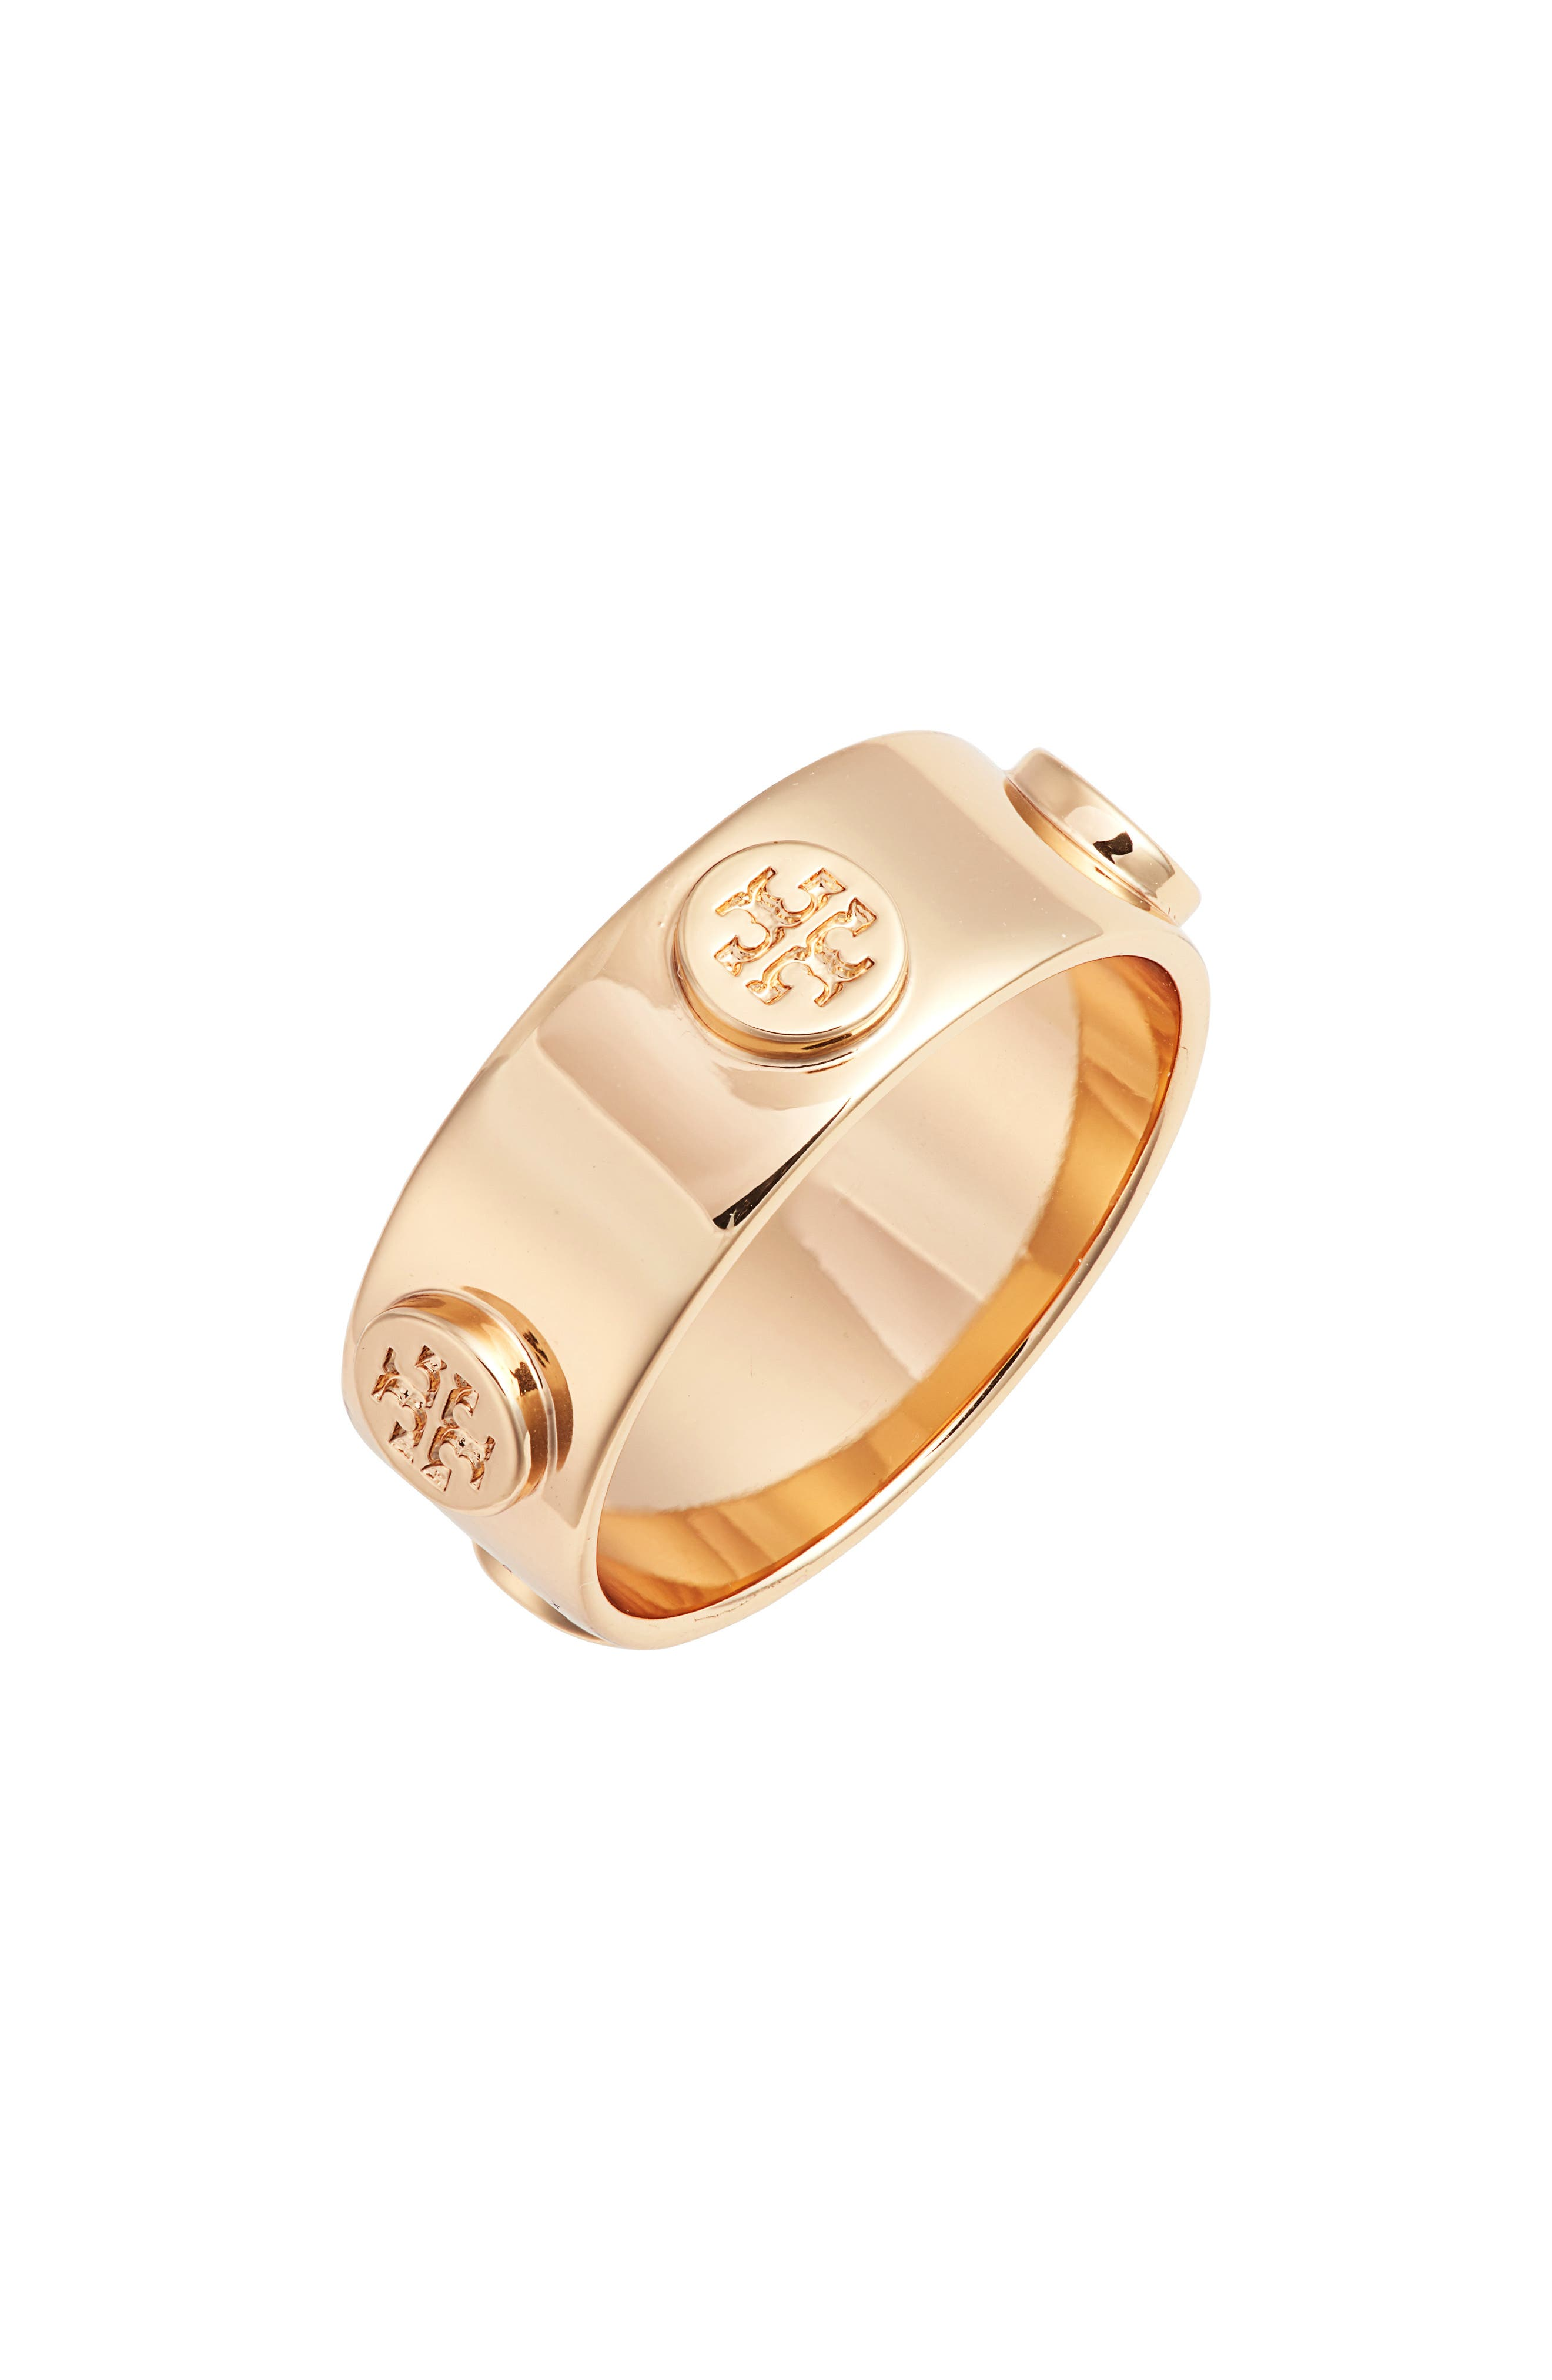 TORY BURCH, Delicate Logo Ring, Main thumbnail 1, color, TORY GOLD